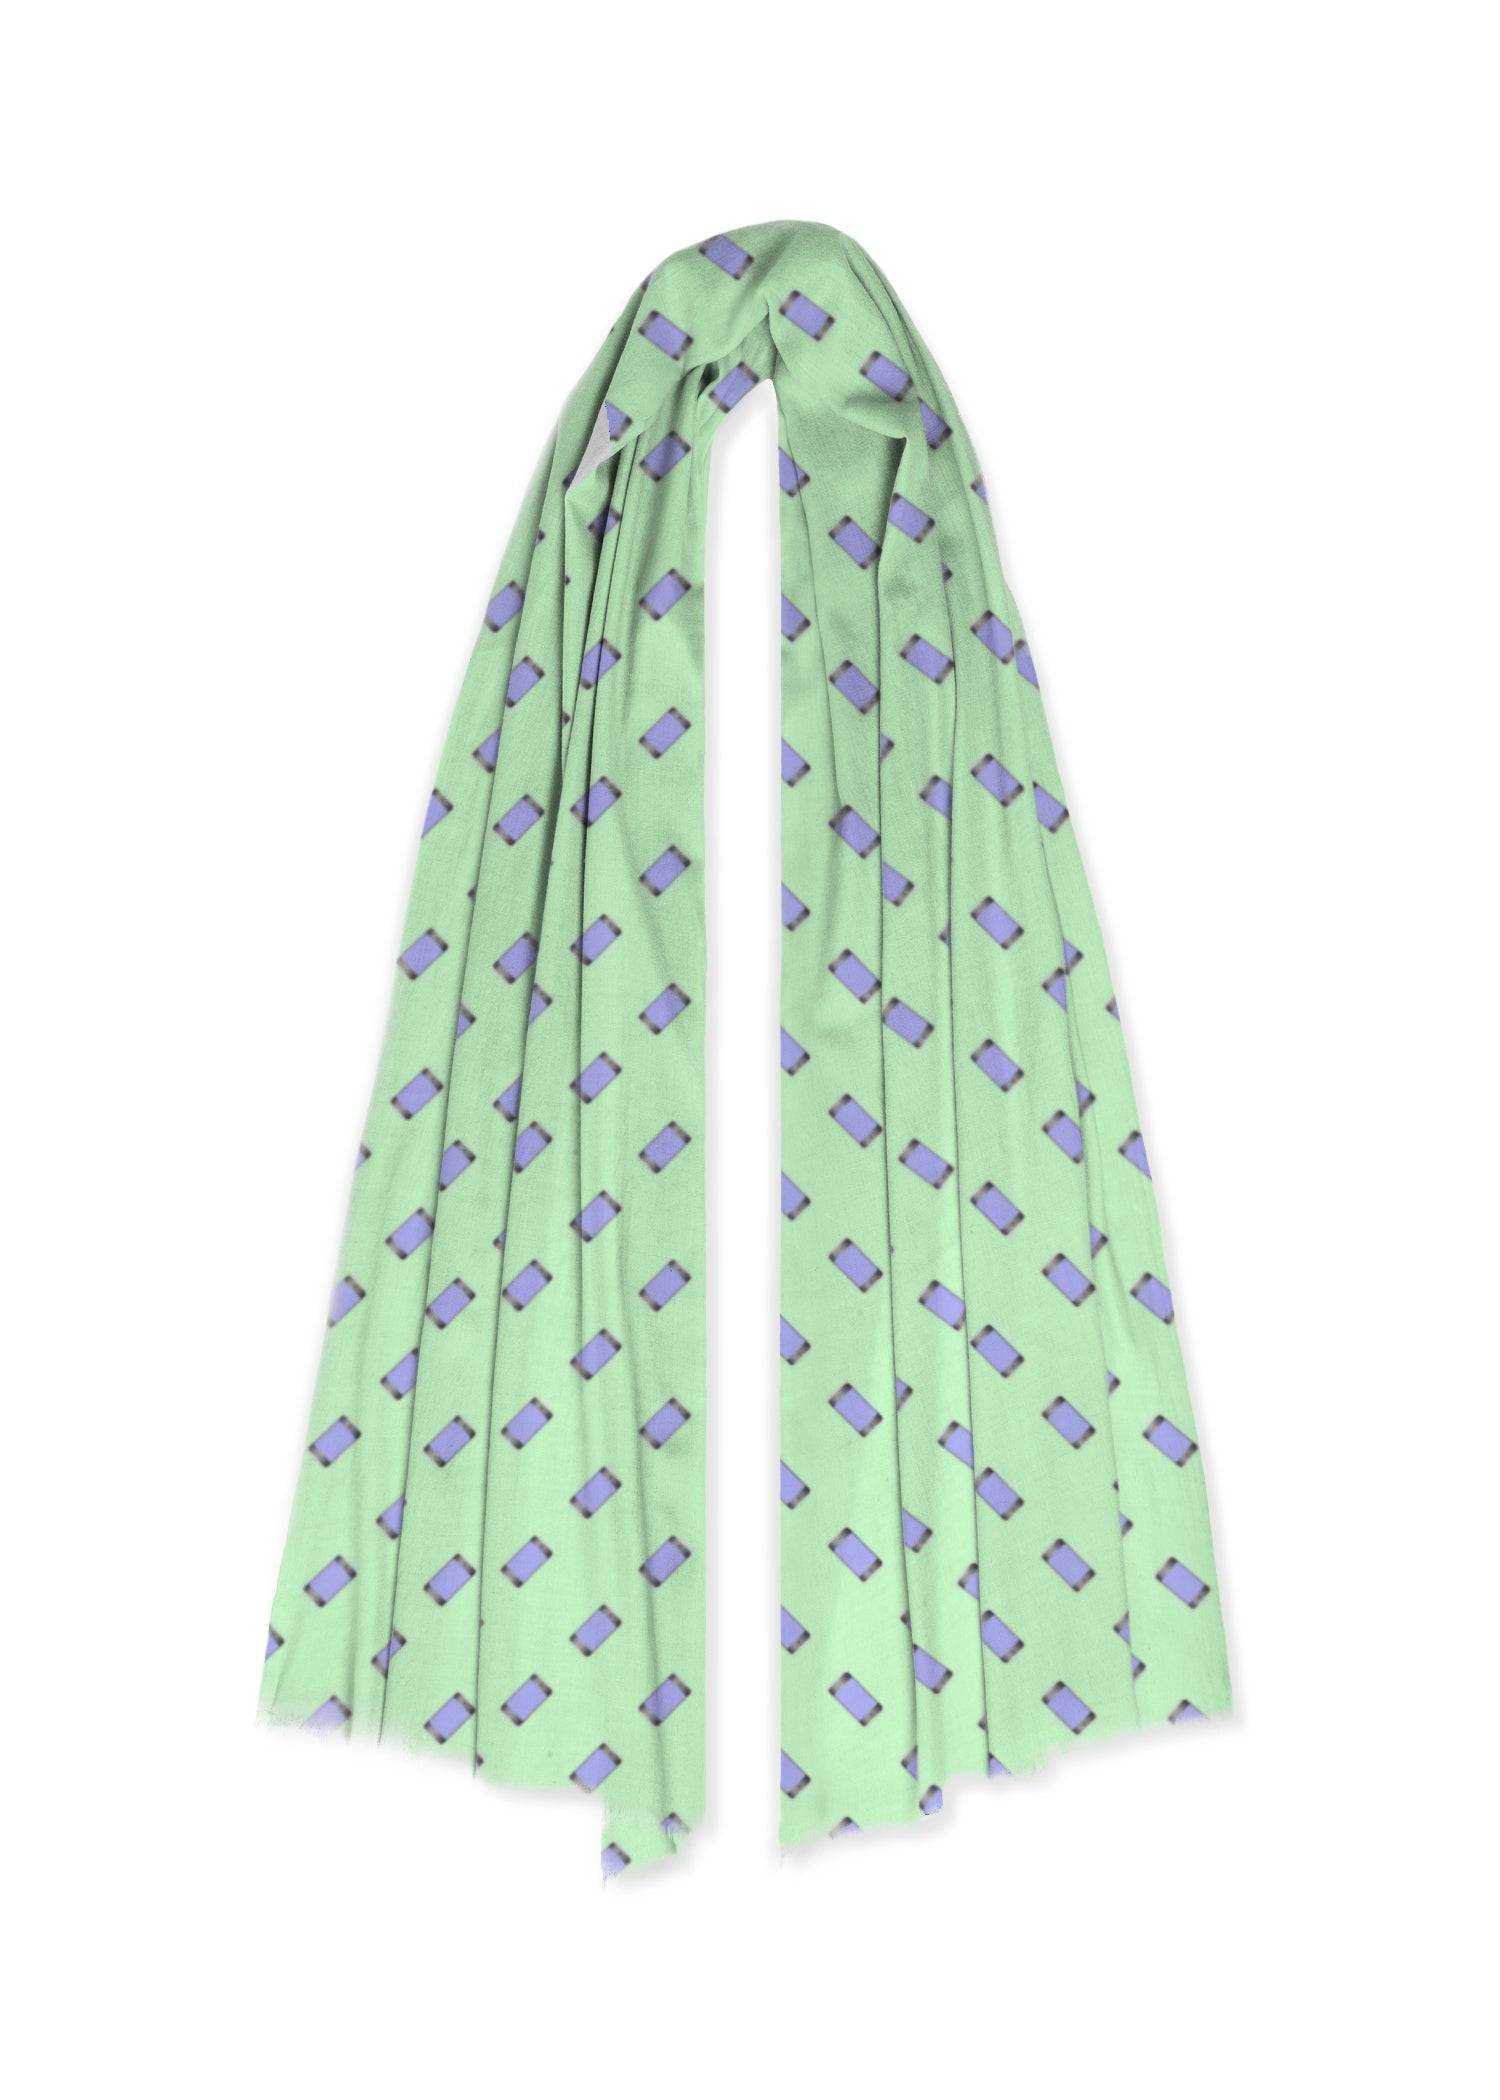 VIDA 100% Cashmere Scarf - Mobile Phones On Green in Green by VIDA Original Artist  - Size: One Size